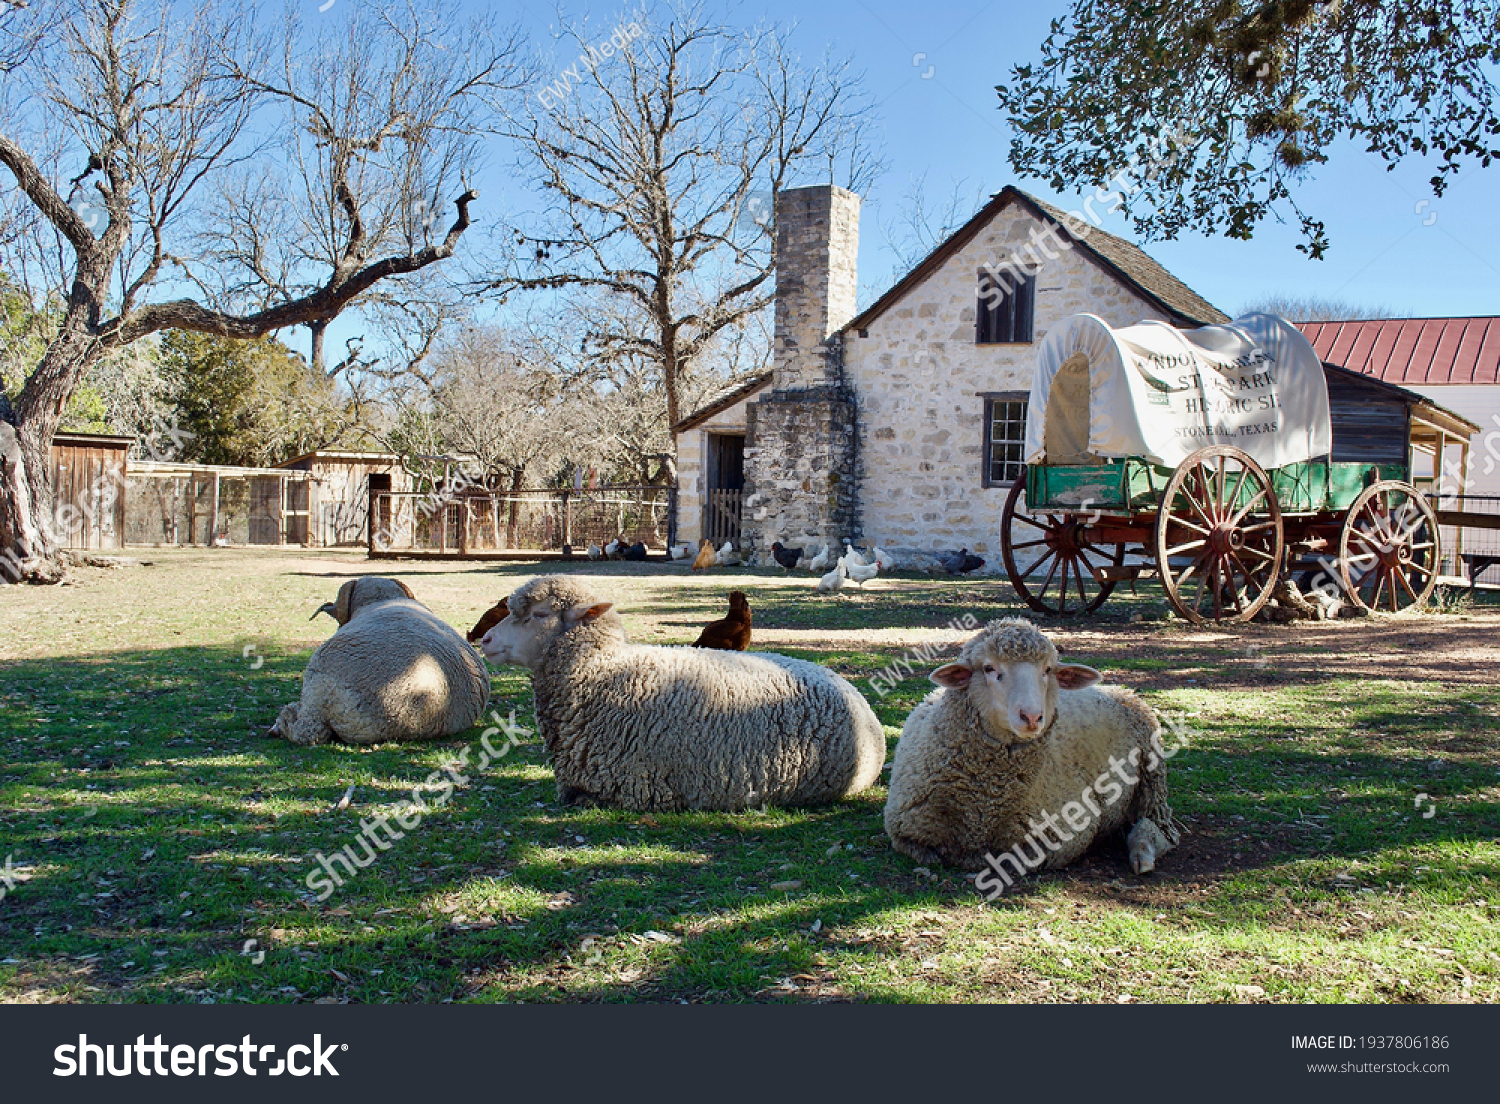 Sheep and a covered wagon at Lyndon B. Johnson State Park and Historic Site and the Sauer-Beckmann Farmstead, living history farm that presents rural Texas life as it was around 1918. #1937806186